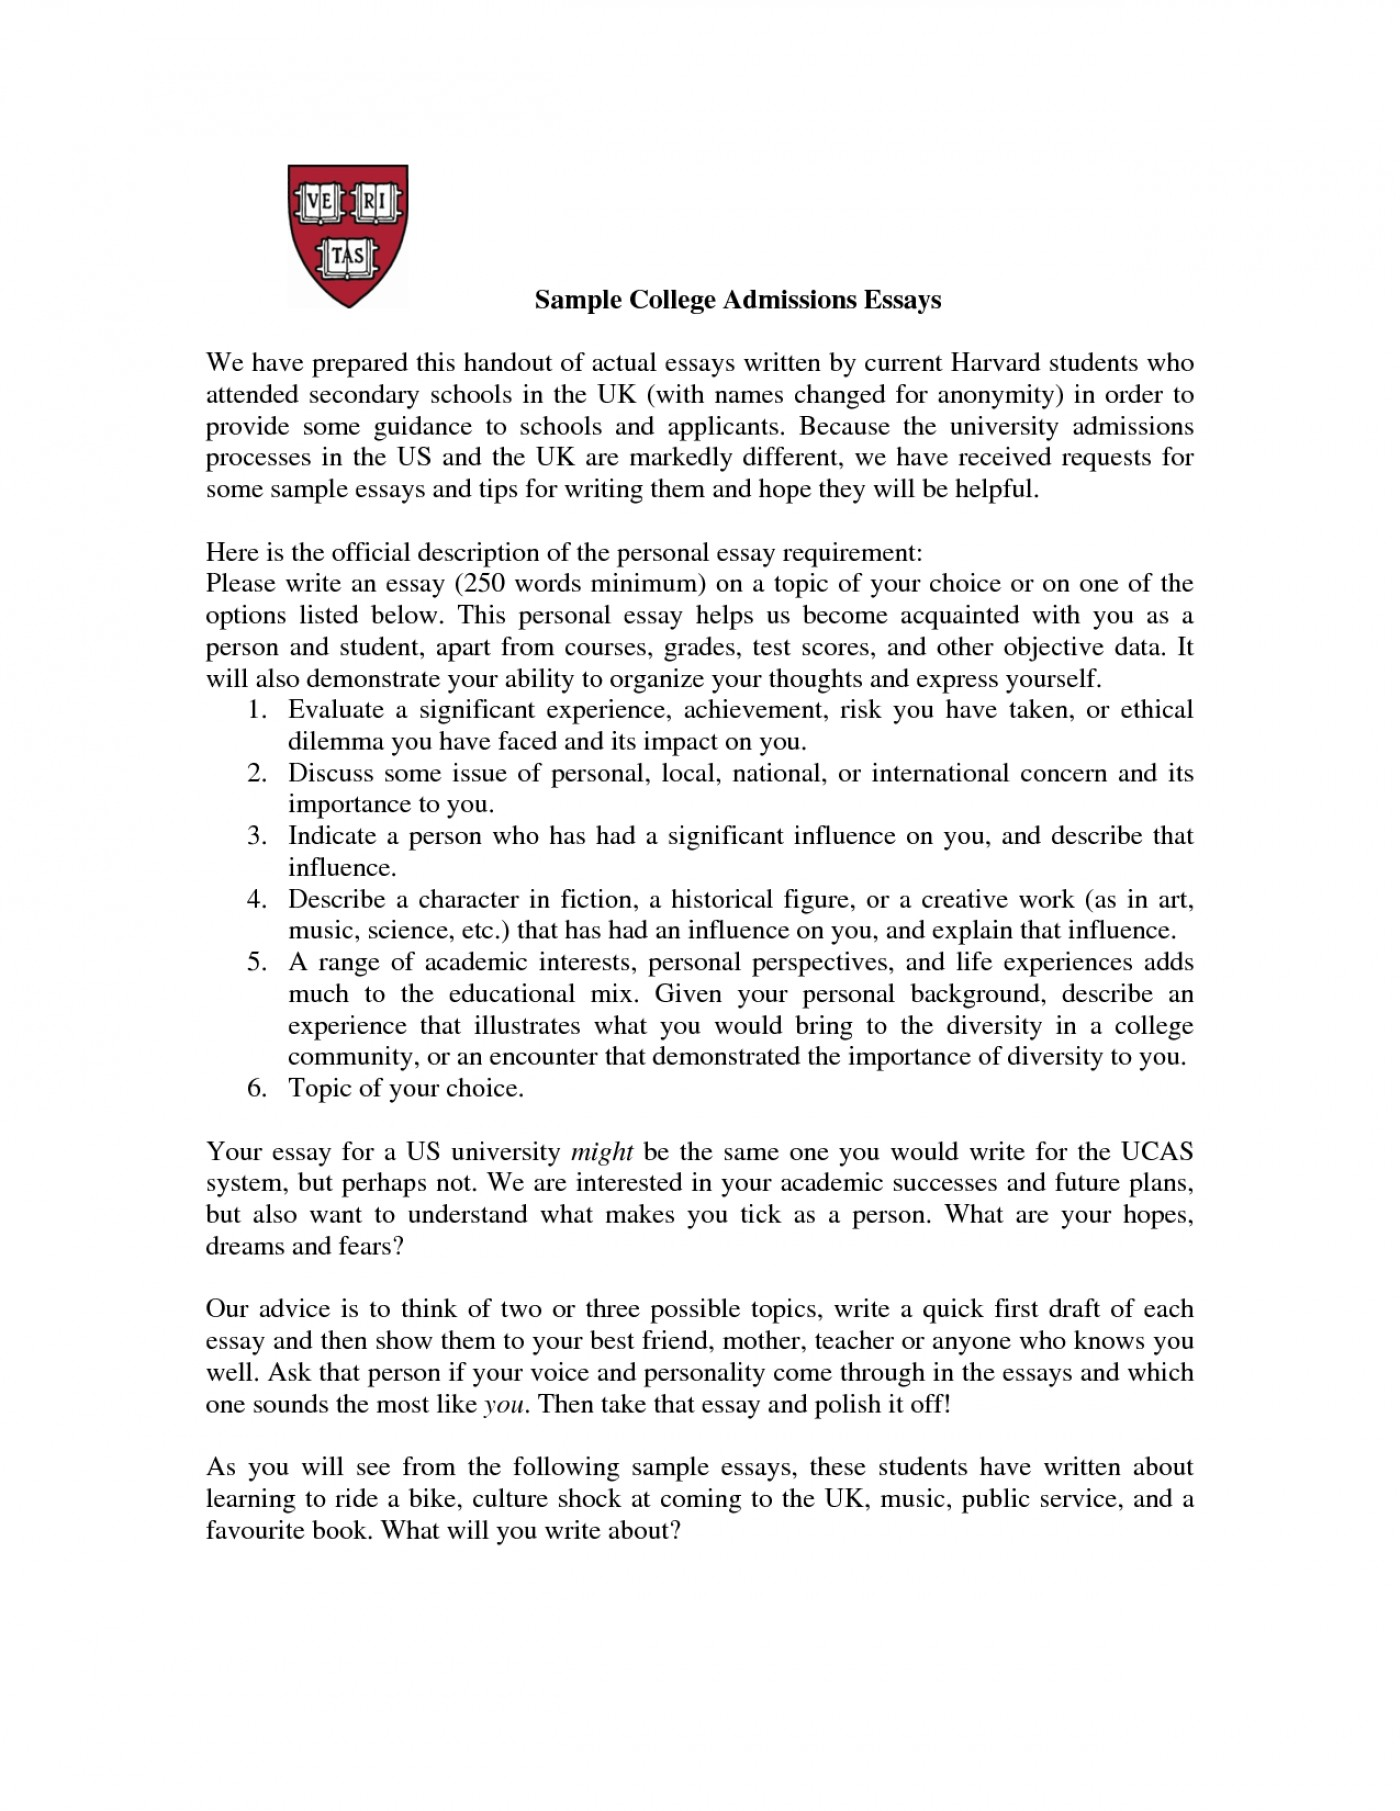 025 Essay Example College Heading What To Write Application About Incredible Admissions Format Papers 1400